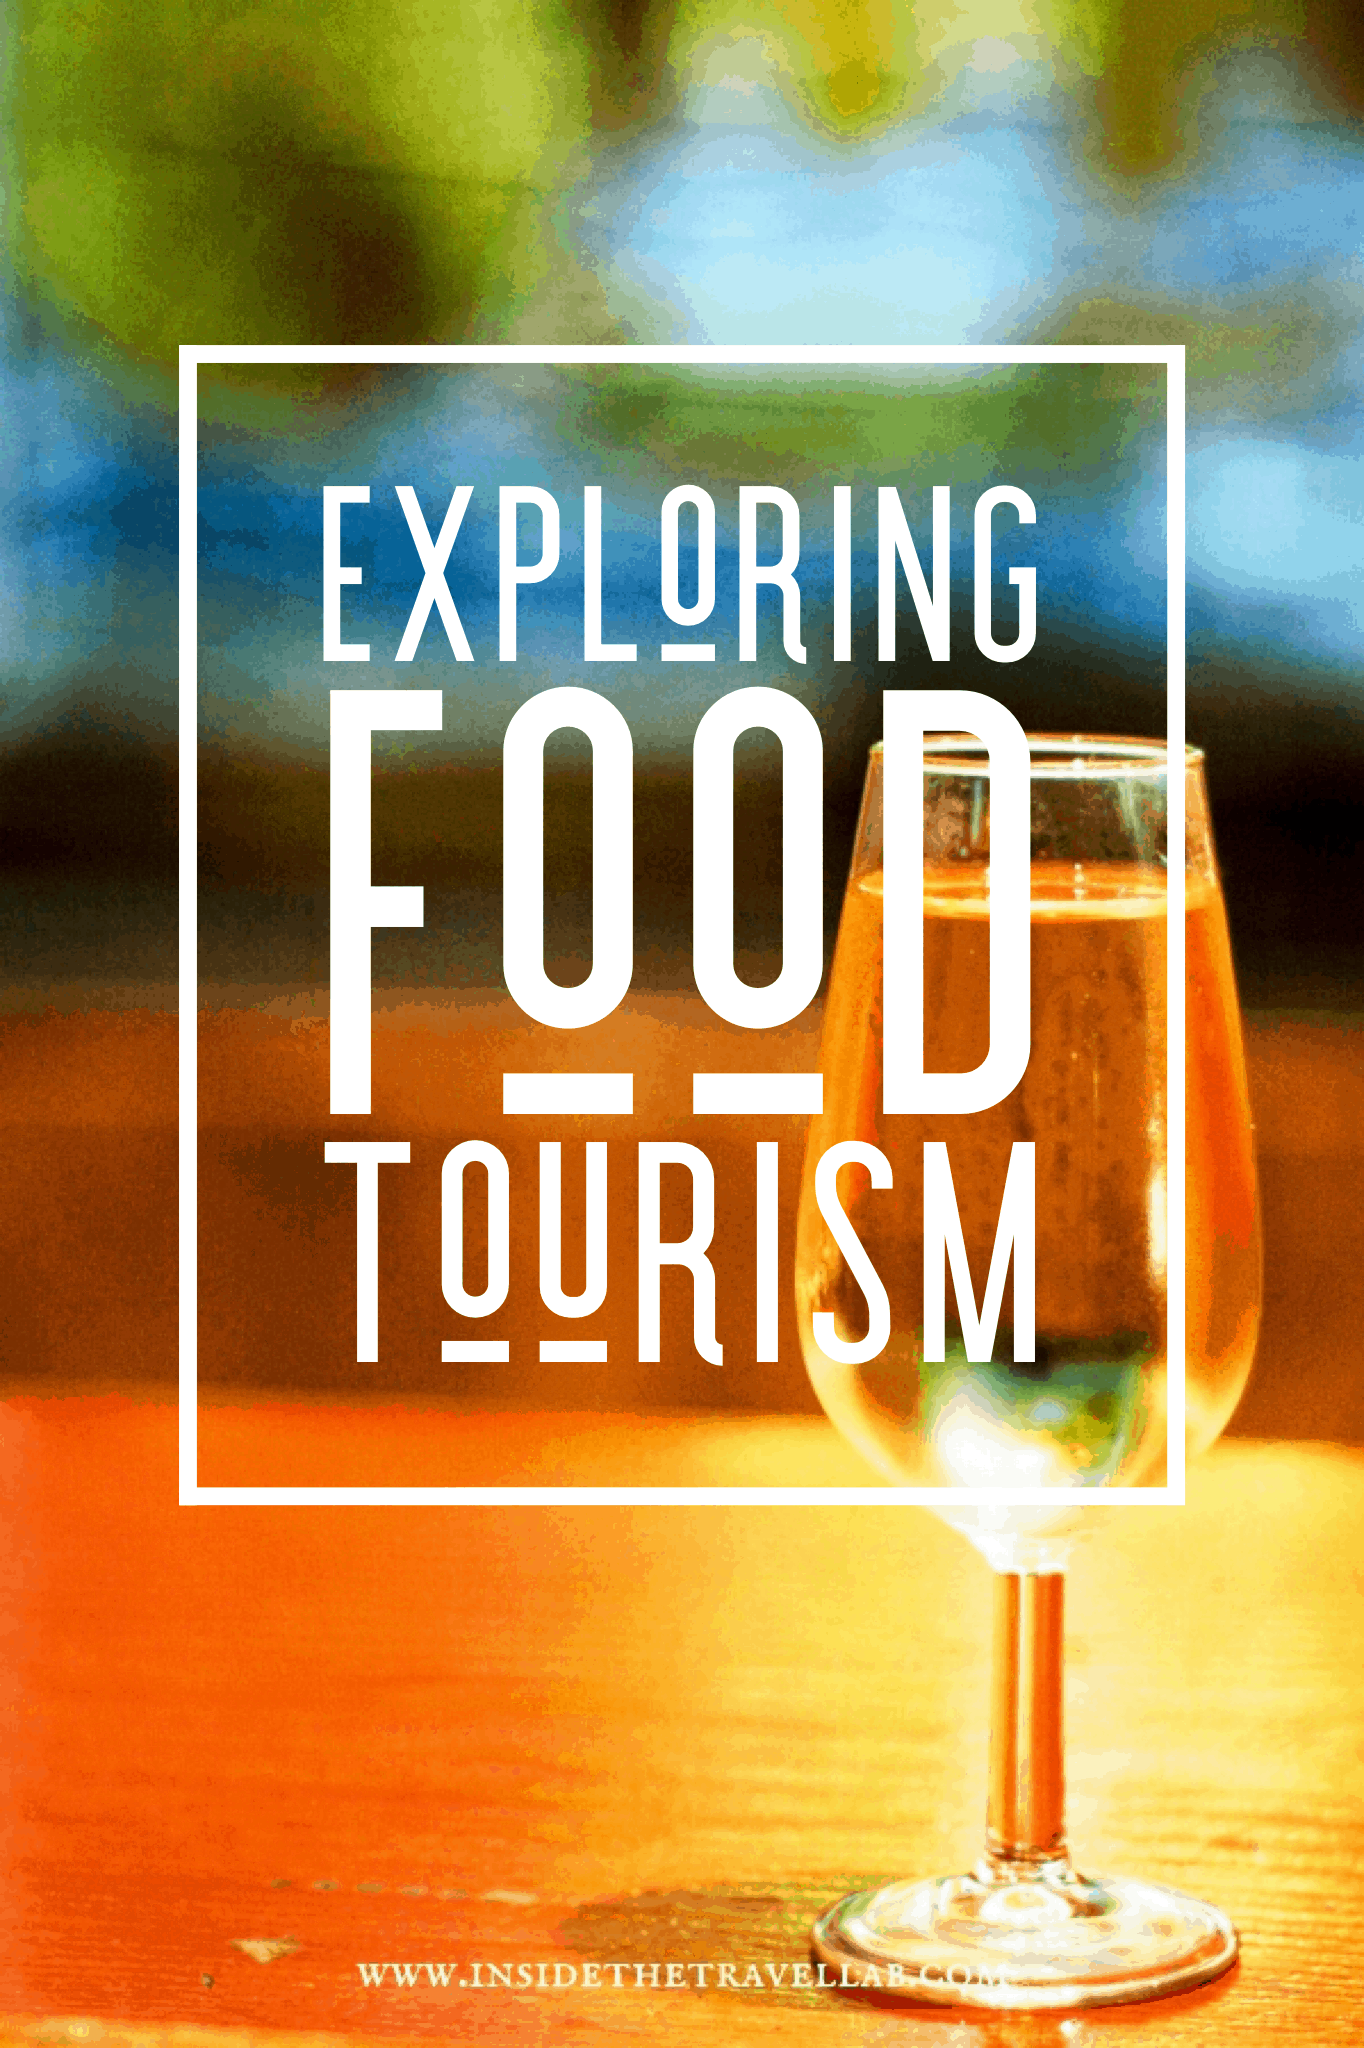 Exploring food tourism cover image with fino sherry